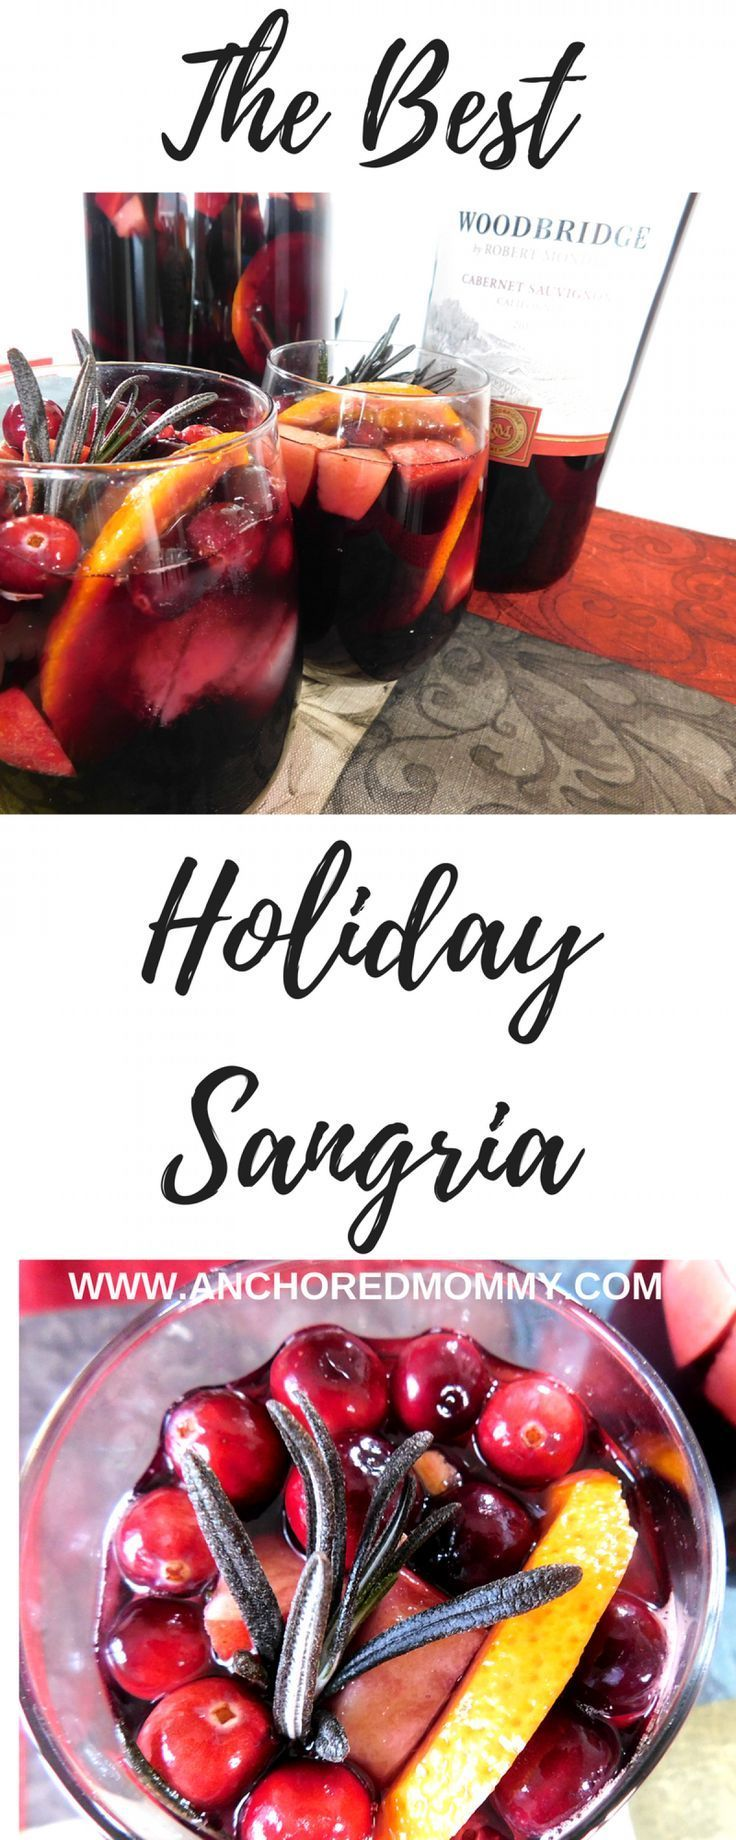 Msg 4 21+ #ad The Best Holiday Sangria - Anchored Mommy #TurkeyDayTips #CollectiveBias  holiday drink recipes   holiday sangria   sangria recipes   best sangria recipes   easy sangria recipe   red wine sangria recipe  